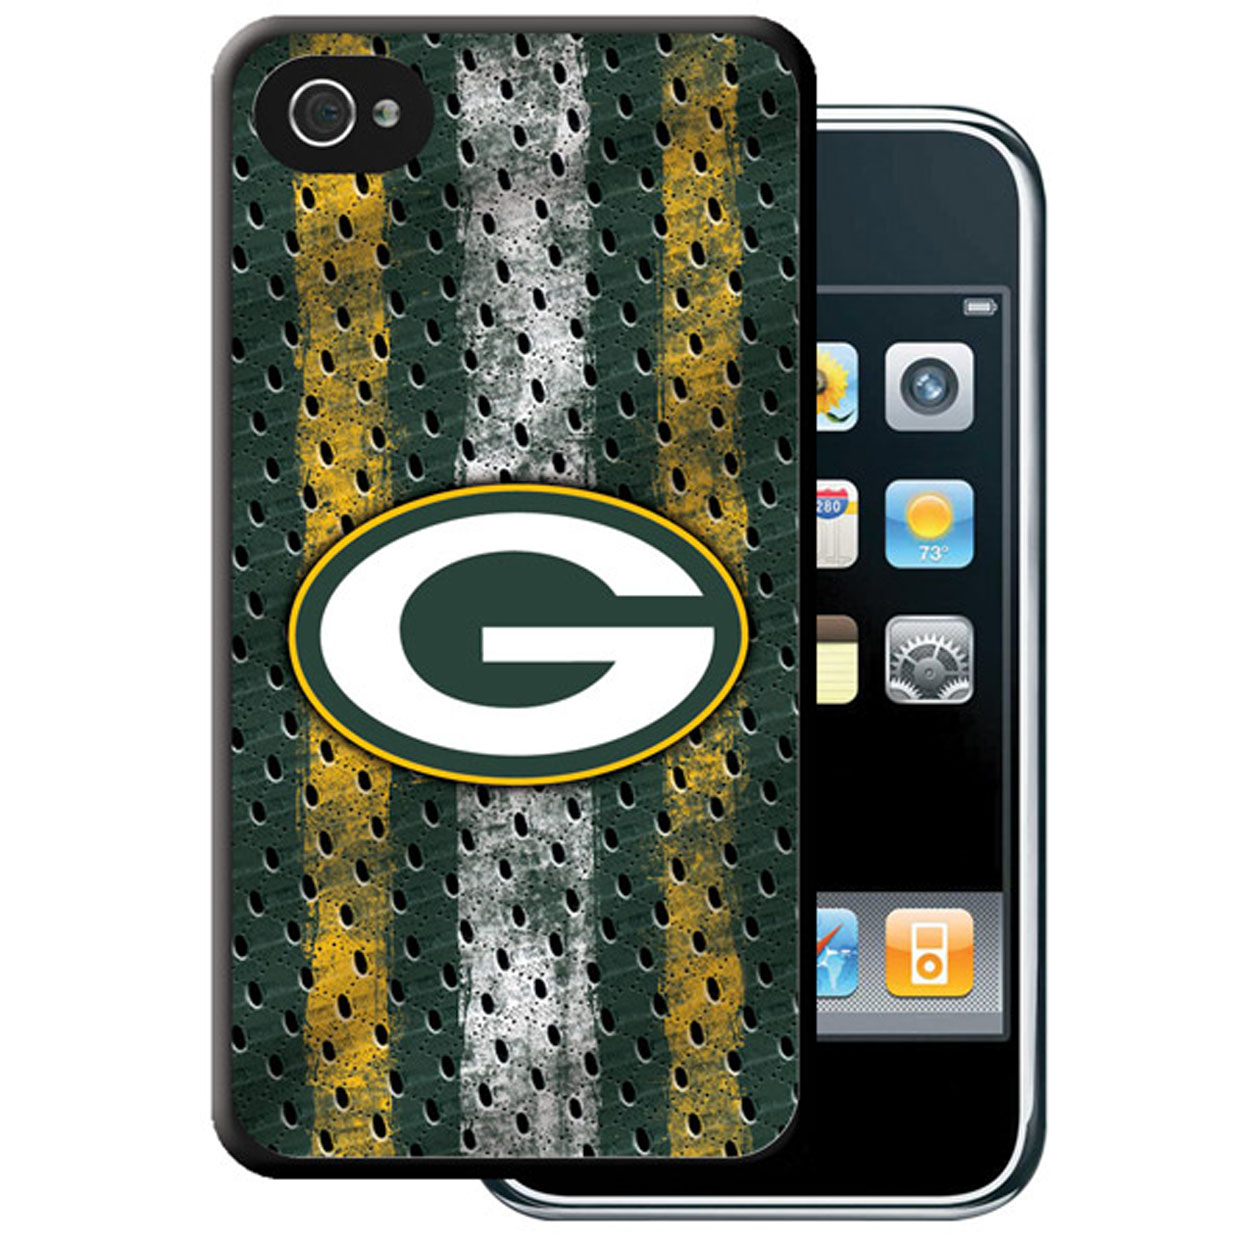 Iphone 4/4S Hard Cover Case - Green Bay Packers